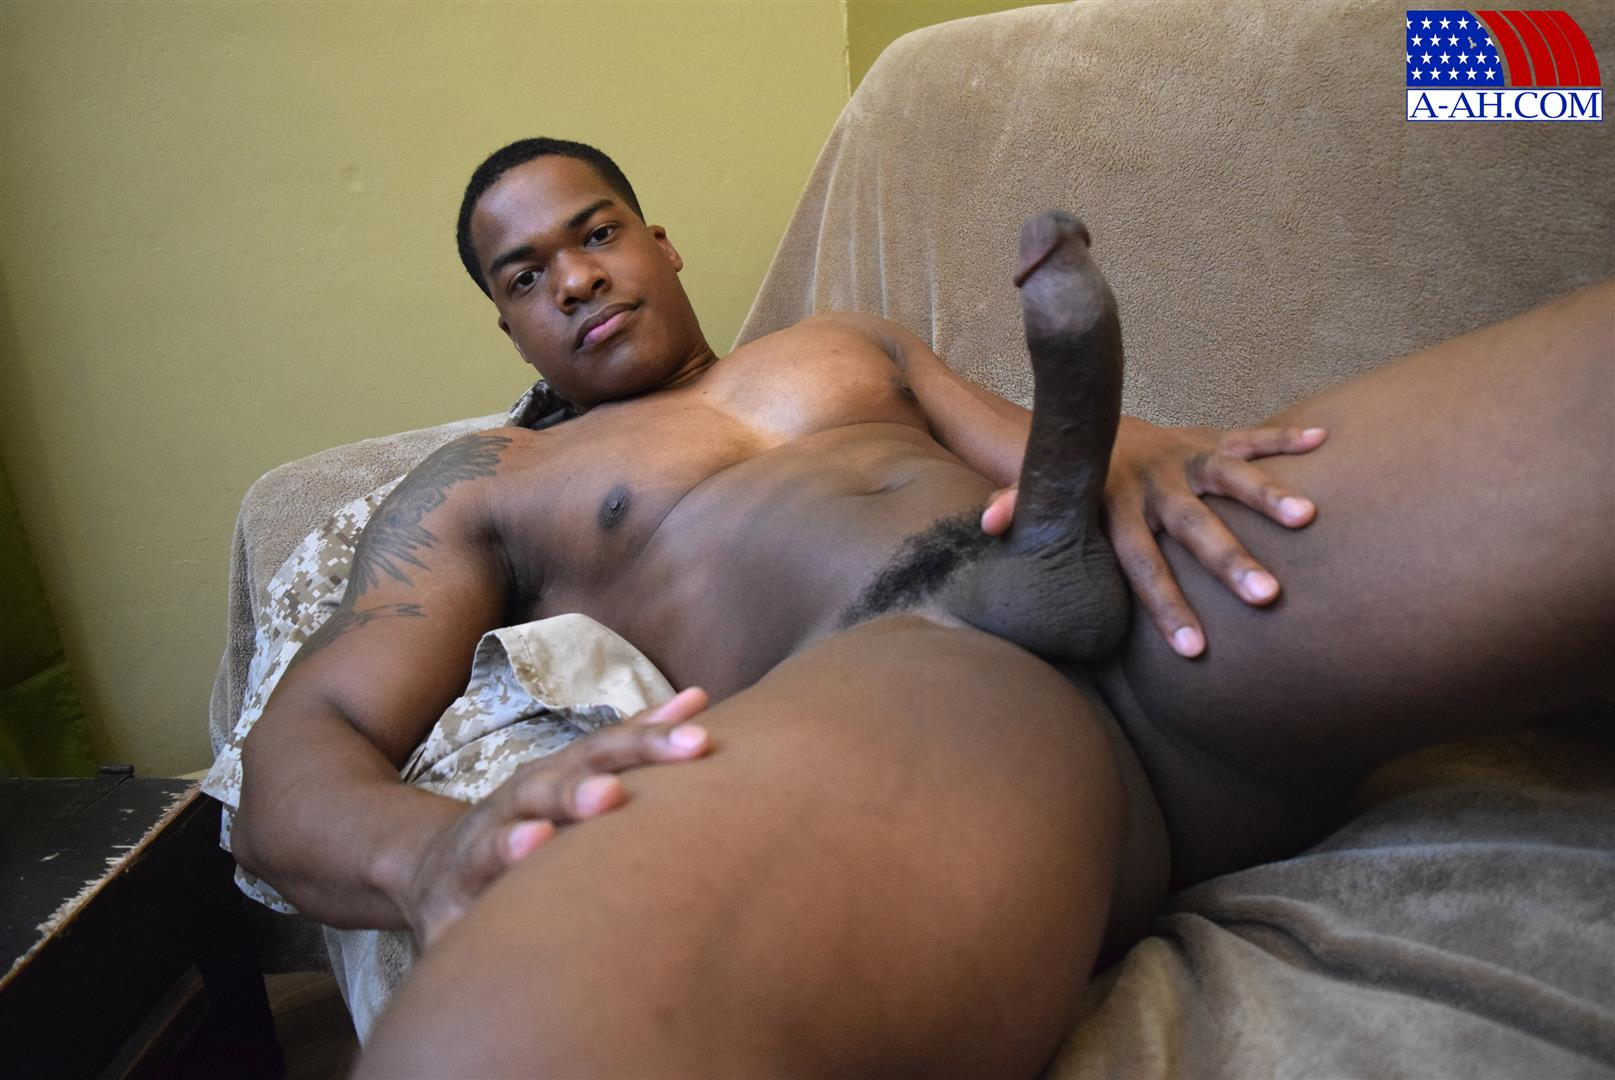 homosexual blackdick